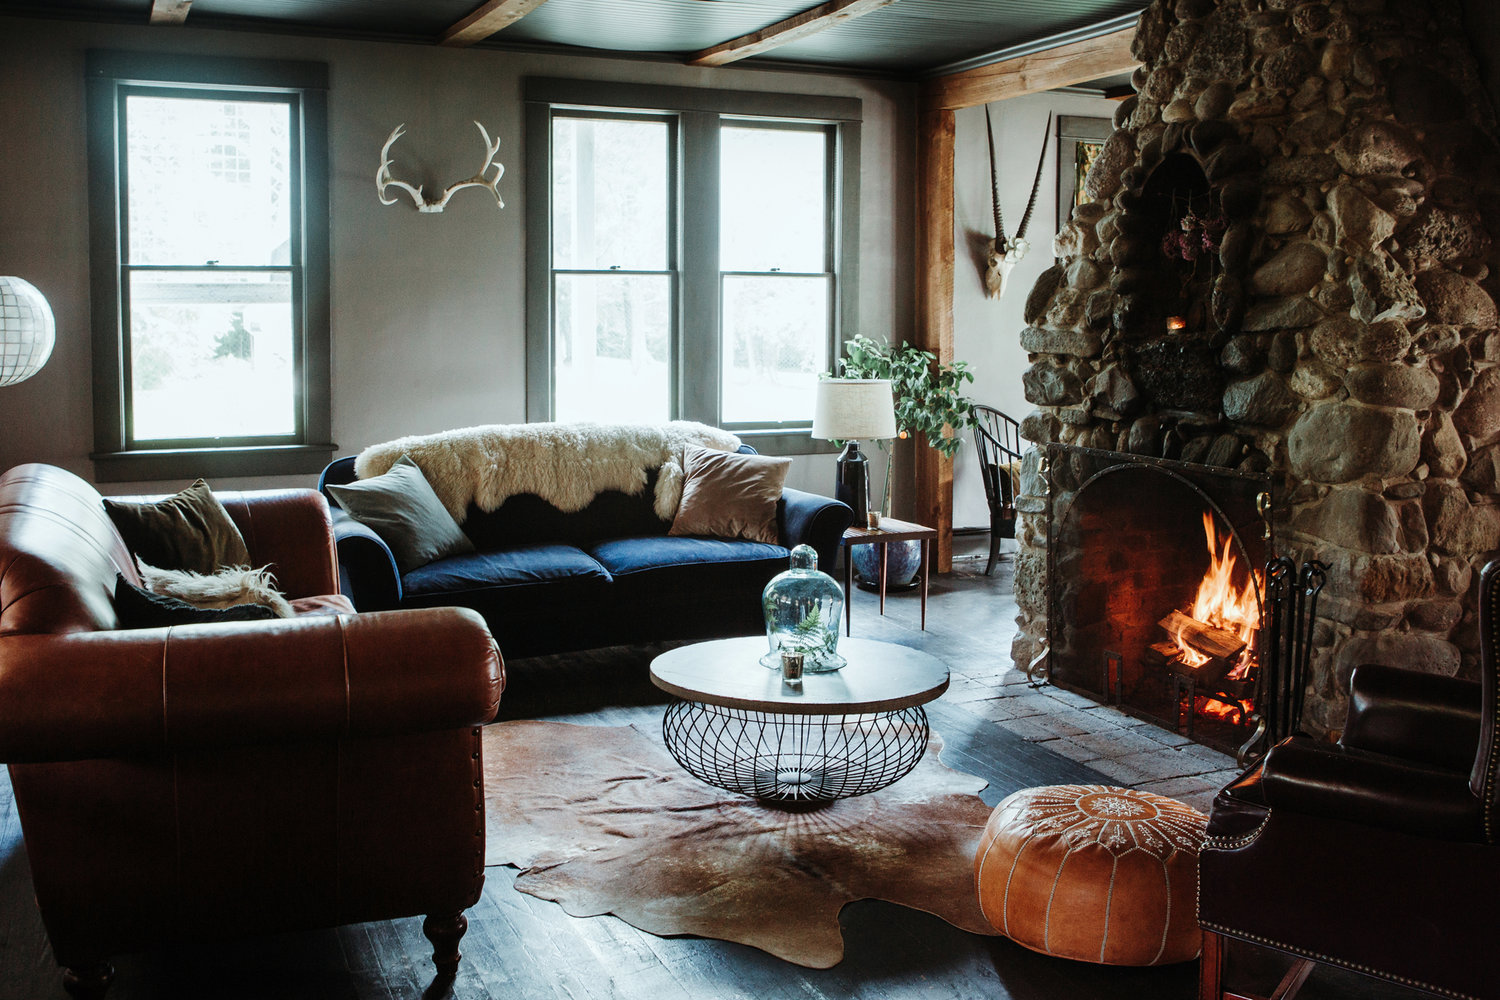 The living room at Foxfire Mountain House.